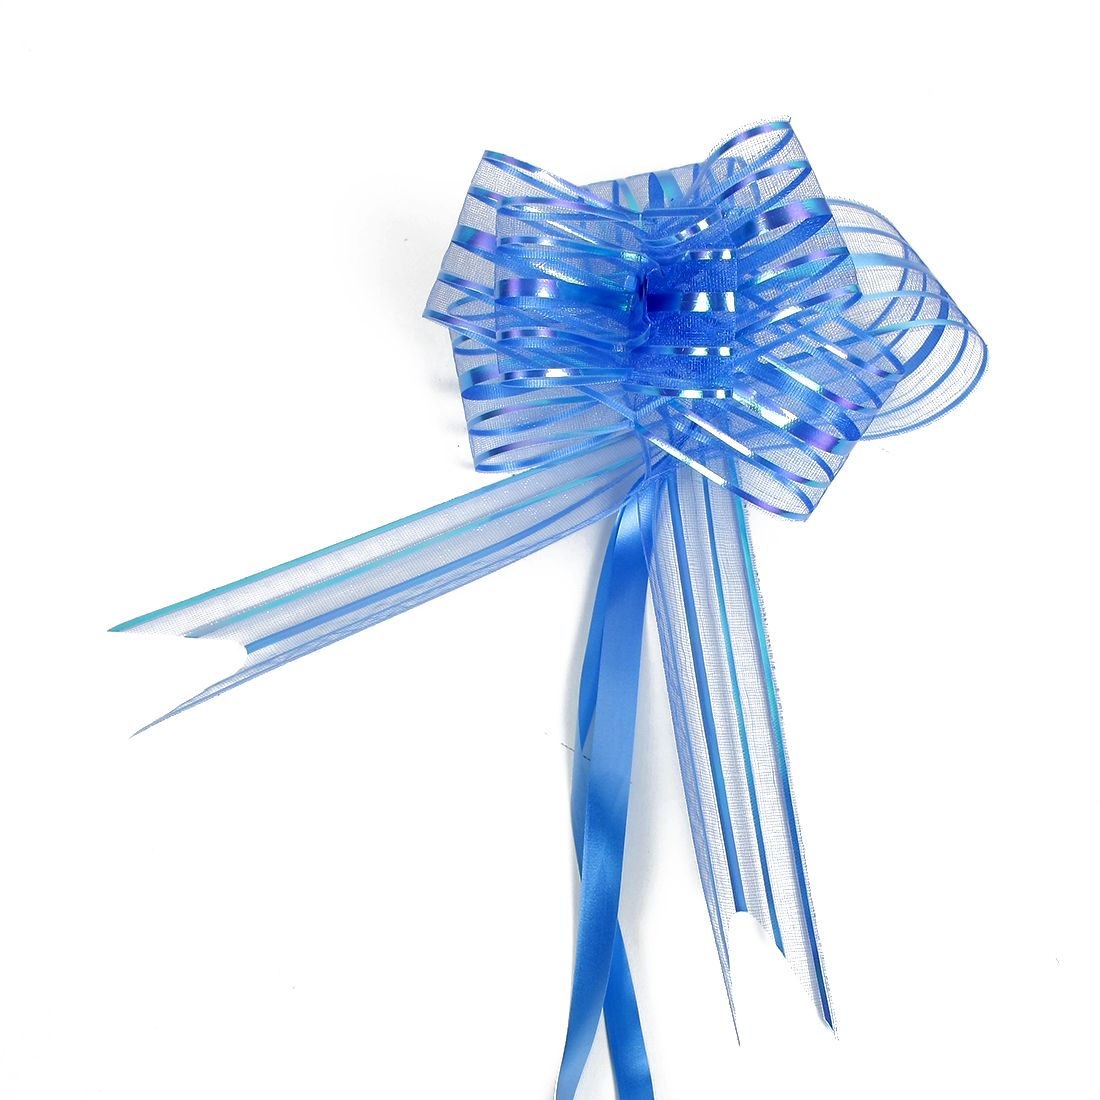 Wedding Party Gift Wrapping Ribbon Pull Bows Decoration Blue 5cm Width 10pcs